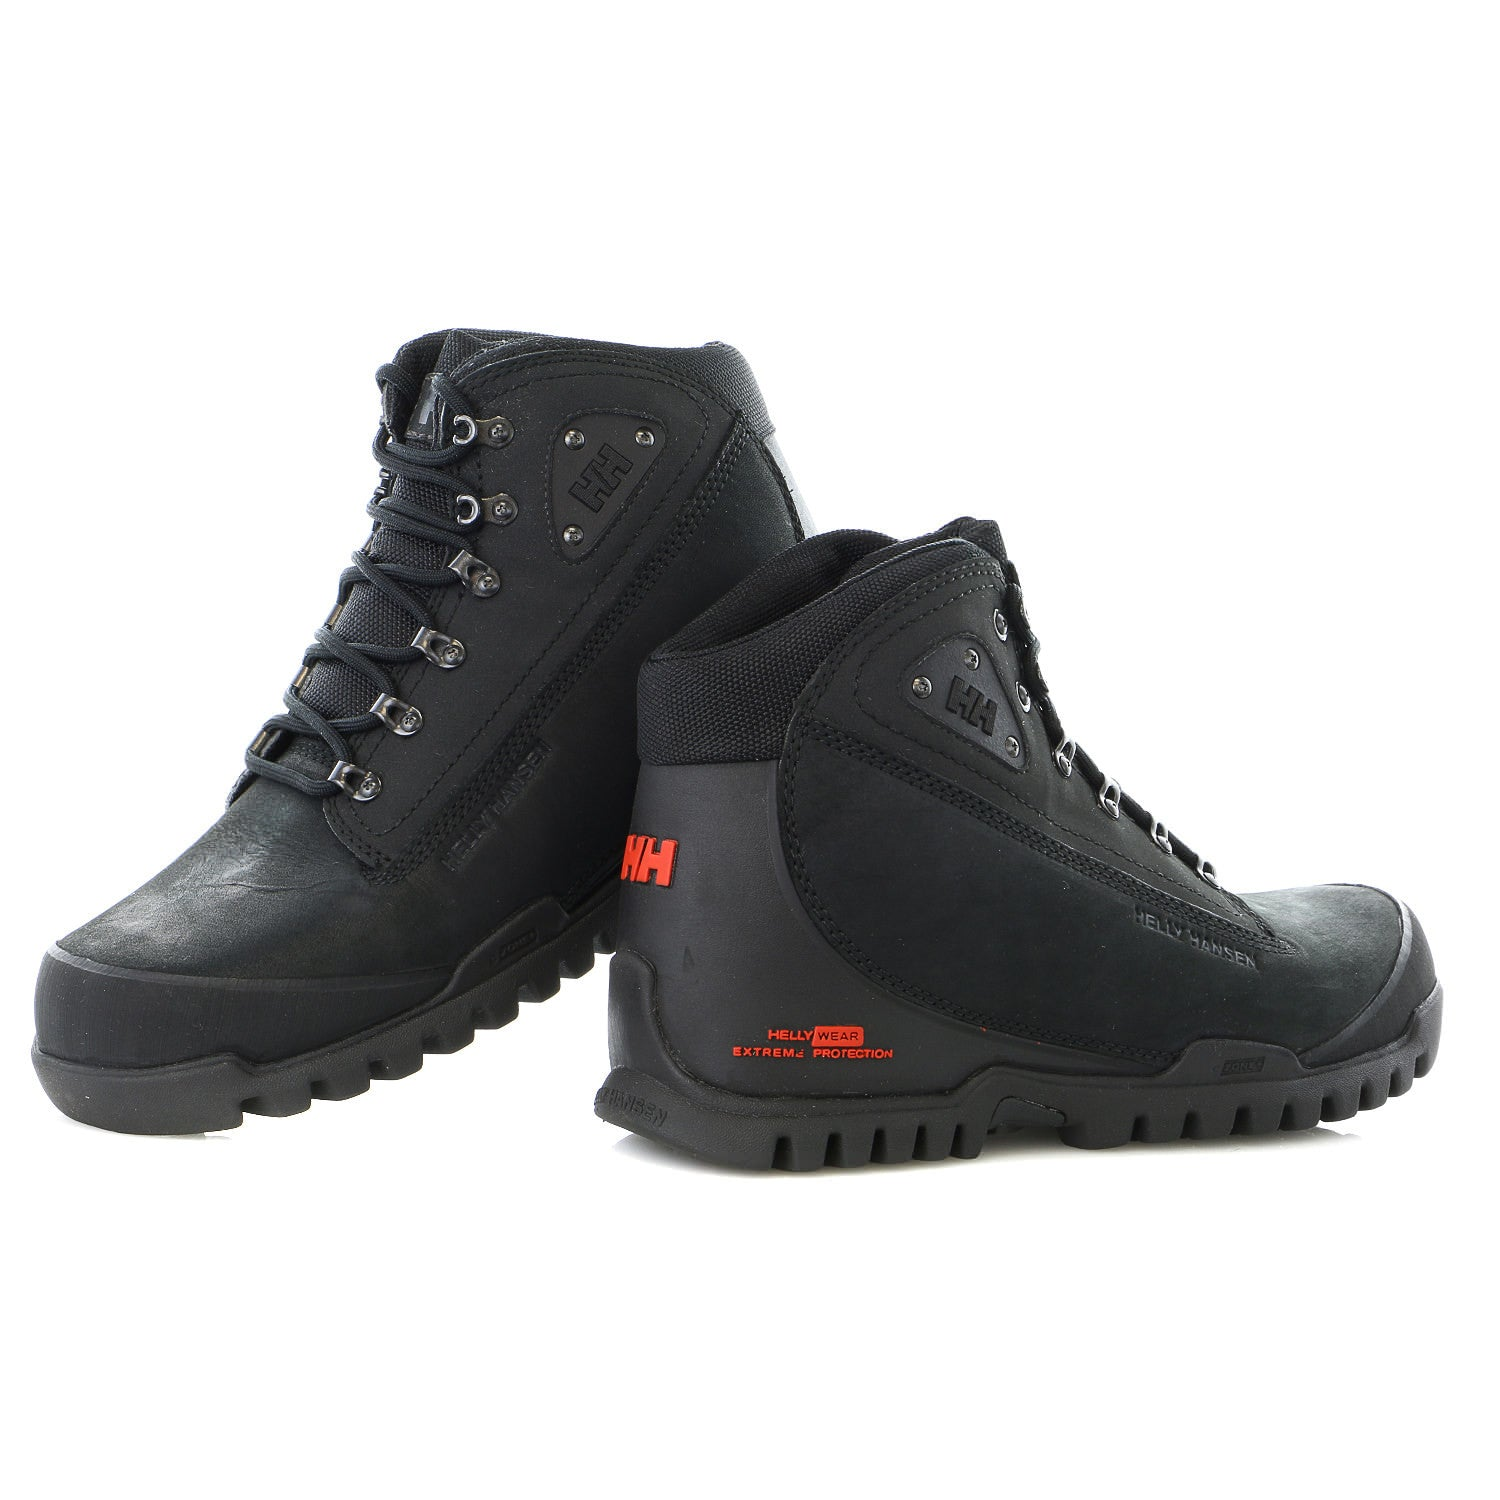 new style 54f6e 20697 Helly Hansen Knaster 3 Winter Boot - Men's